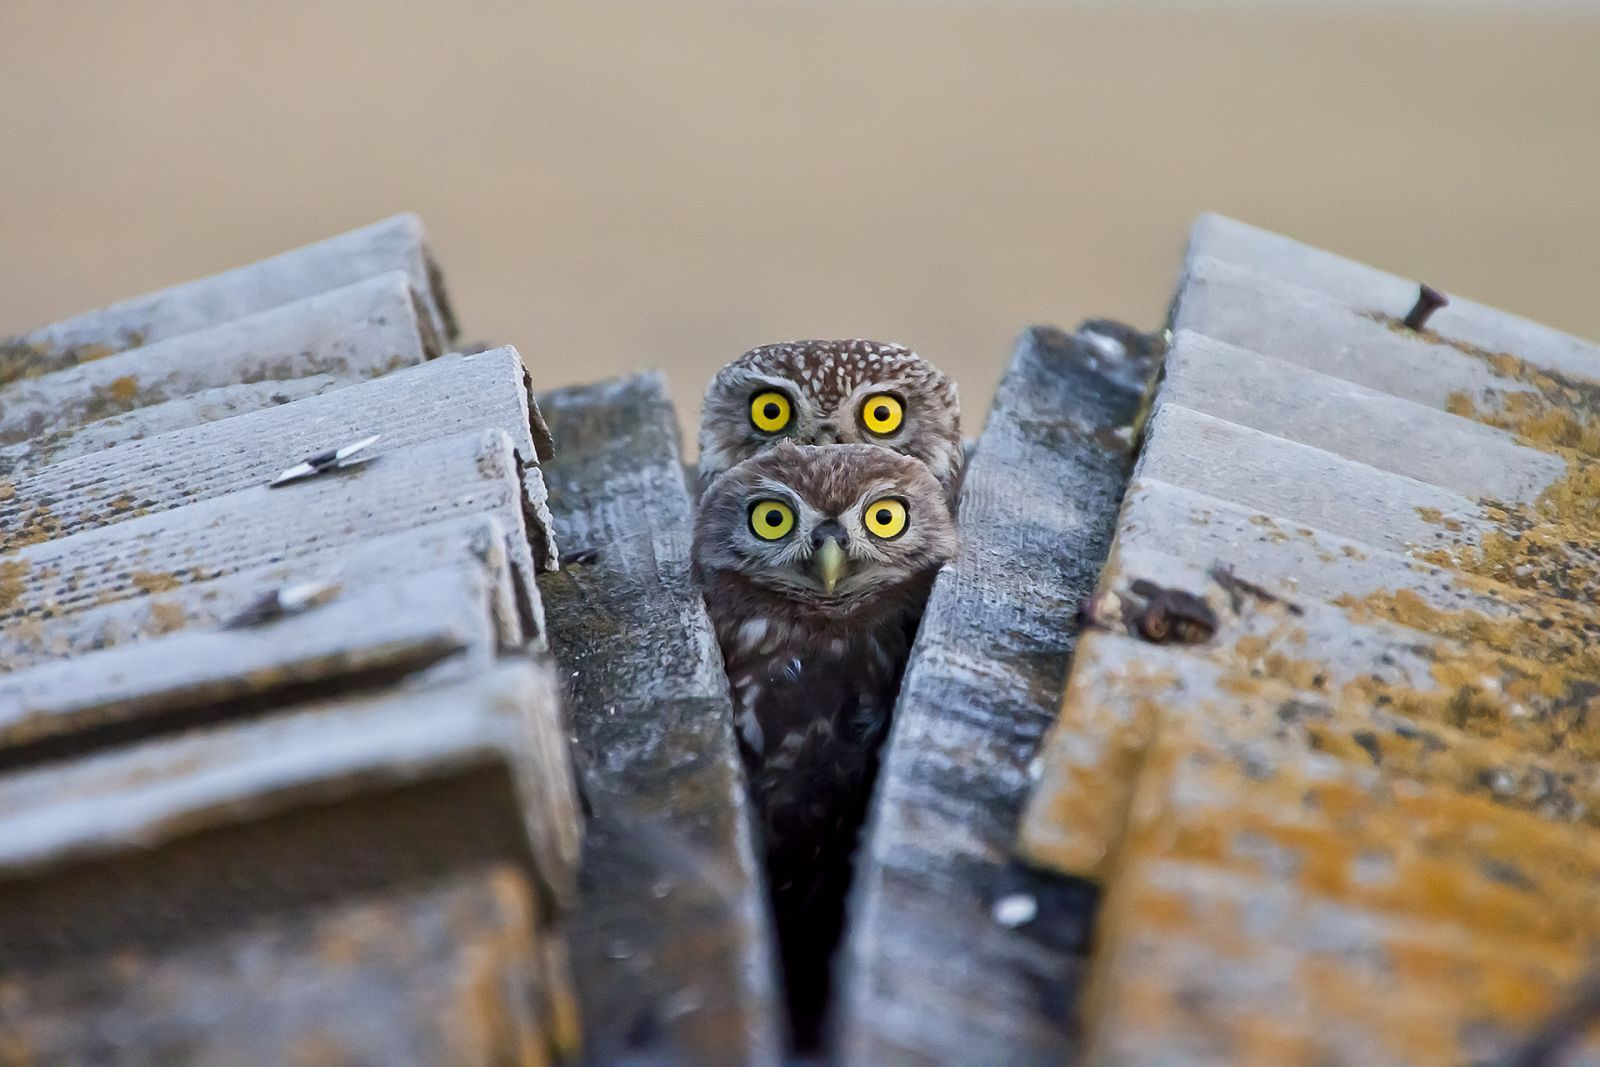 Four-eyed Owl, © Andrey Gilev, These Funny Animals Nomination, Most Beautiful Country Photo Contest